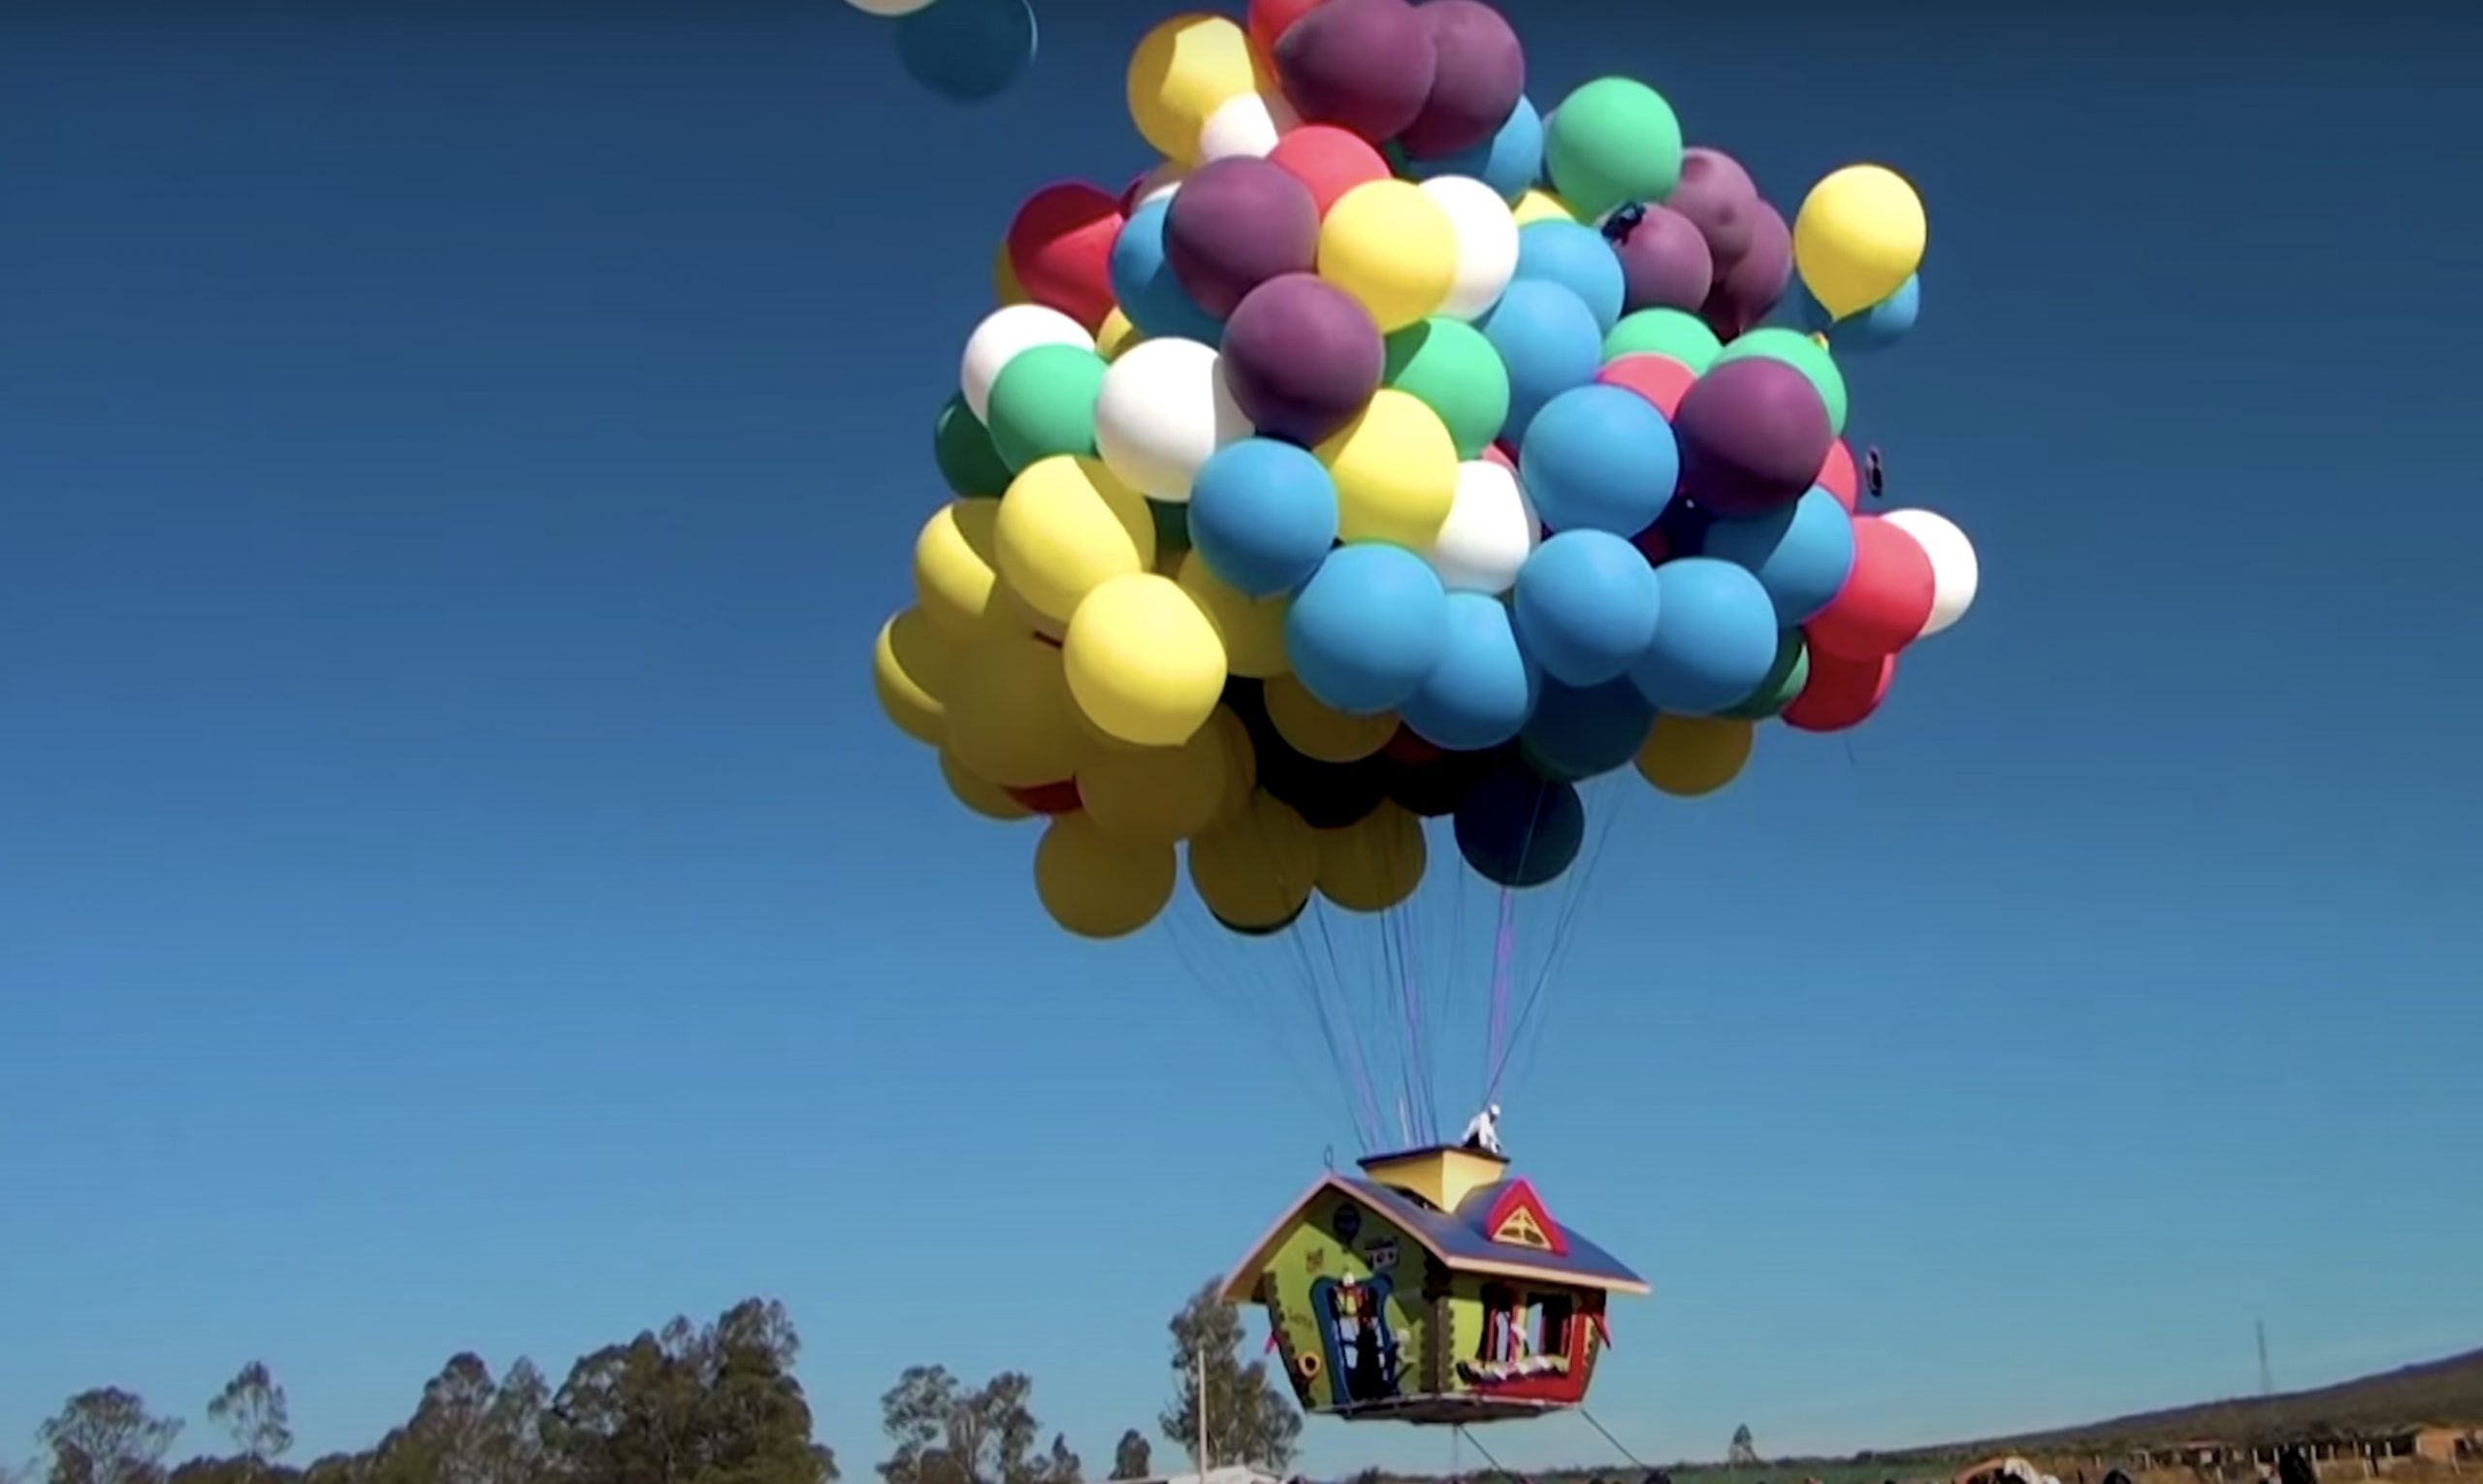 The Real Life Balloon House From 'Up'